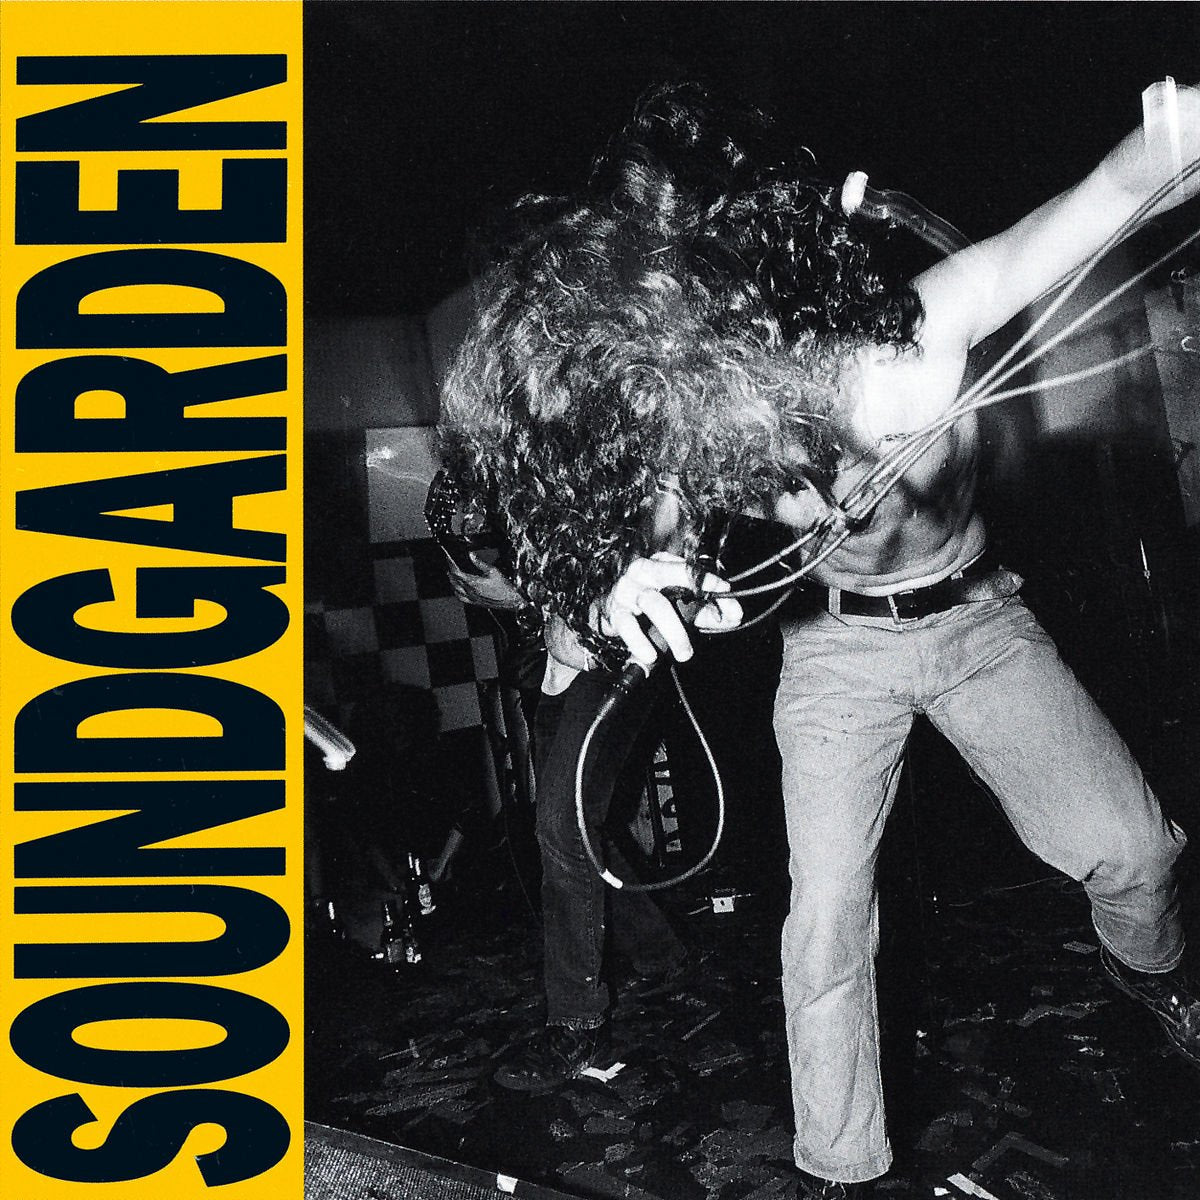 Sound Garden - Louder Than Love - Gears For Ears